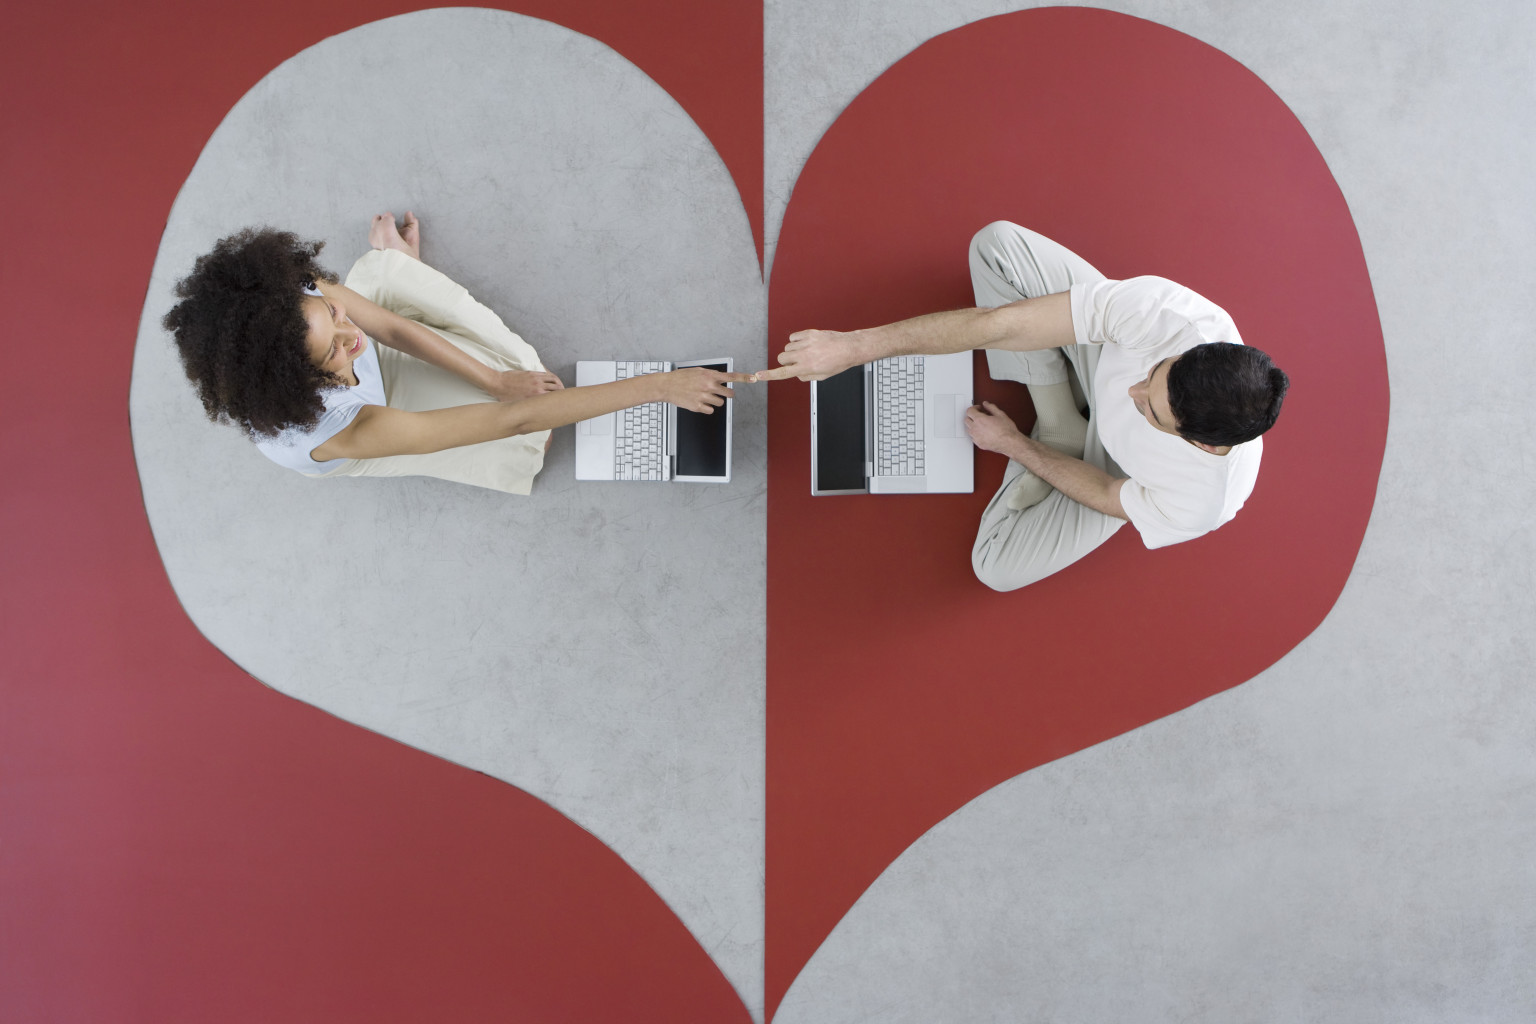 Virtual Romance: A Myth or A Real Opportunity To Meet A Soulmate